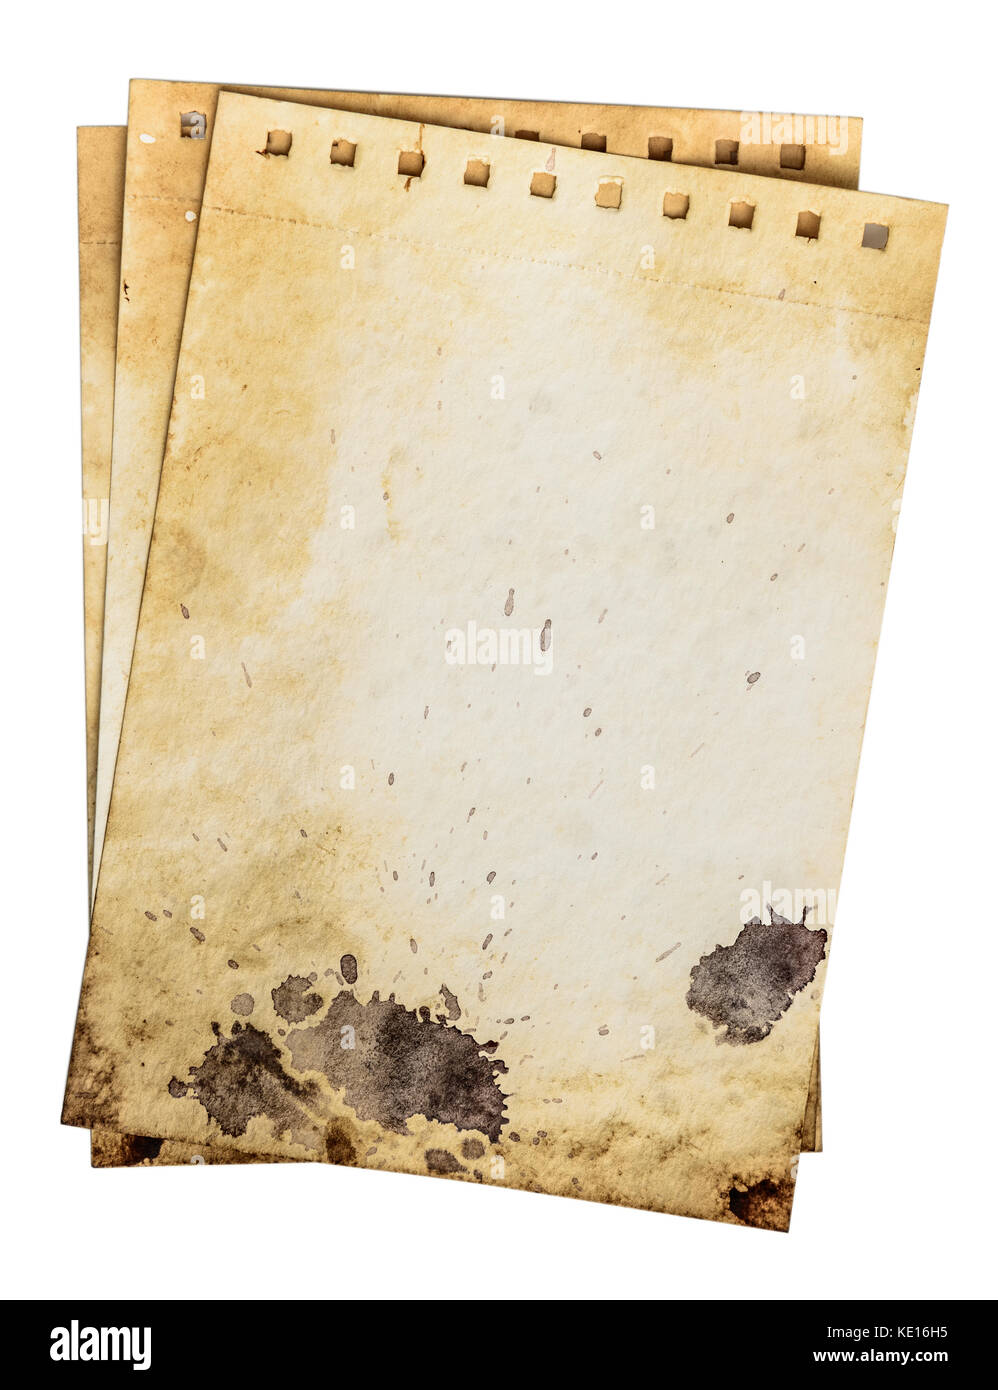 Dirty notebook pages. Old rough grunge paper template with drops and dirty crack pattern. Work path - Stock Image